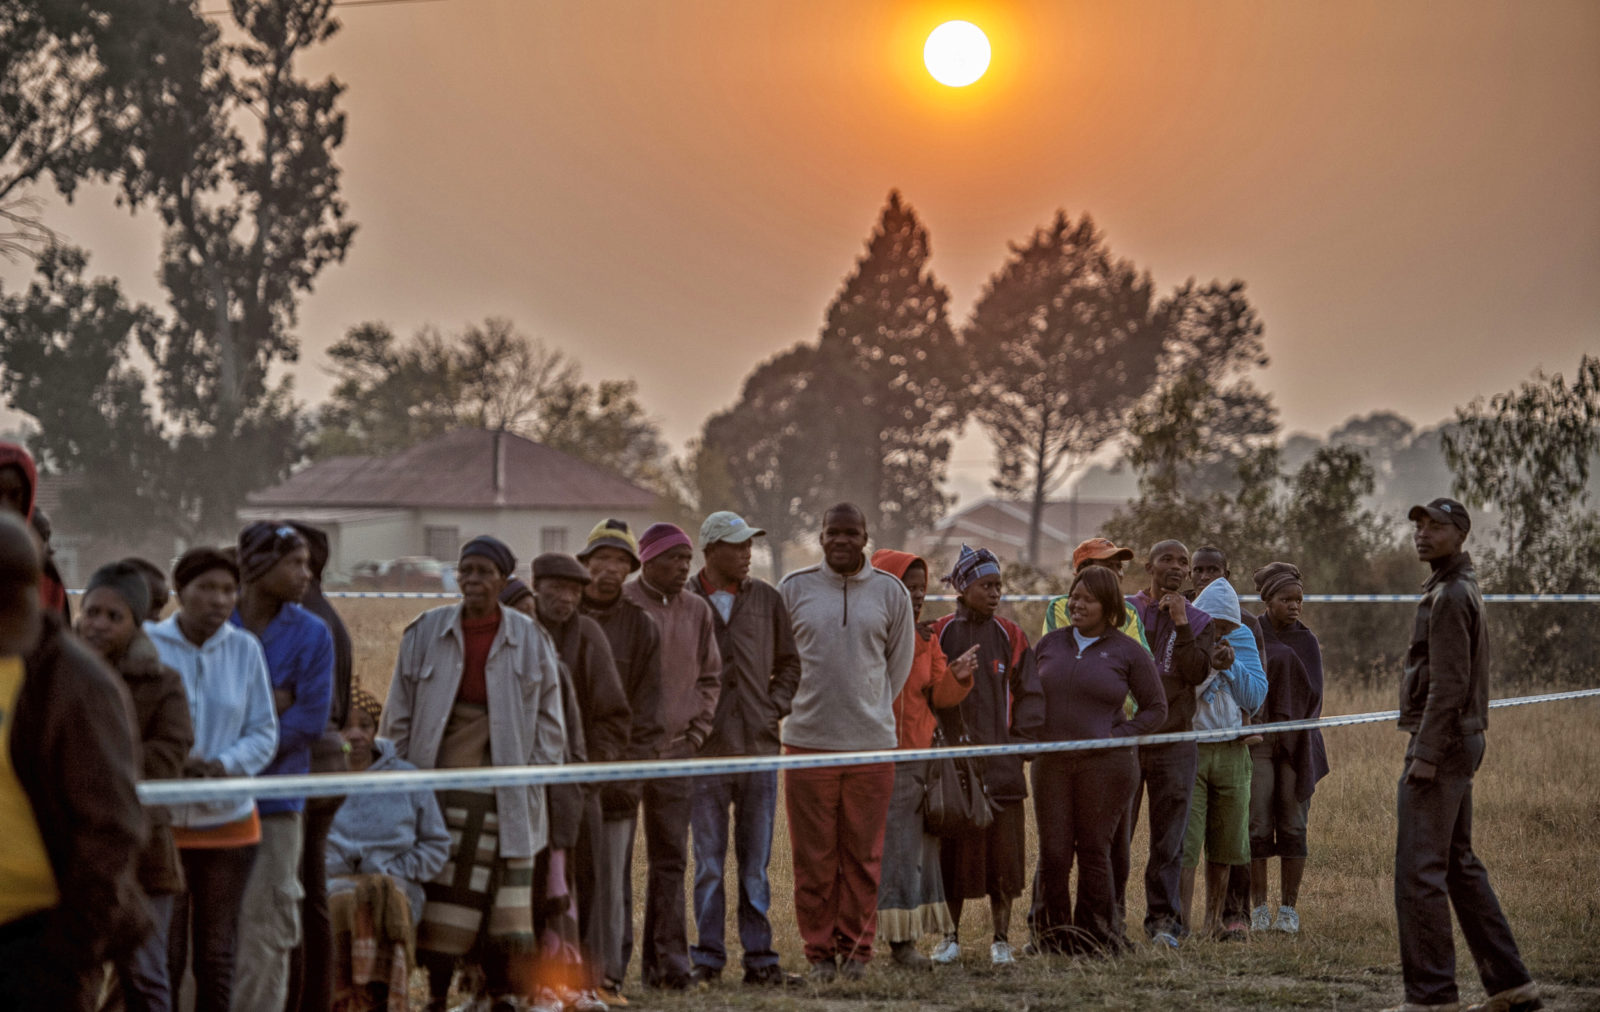 South Africa's youth registering and voting — is th